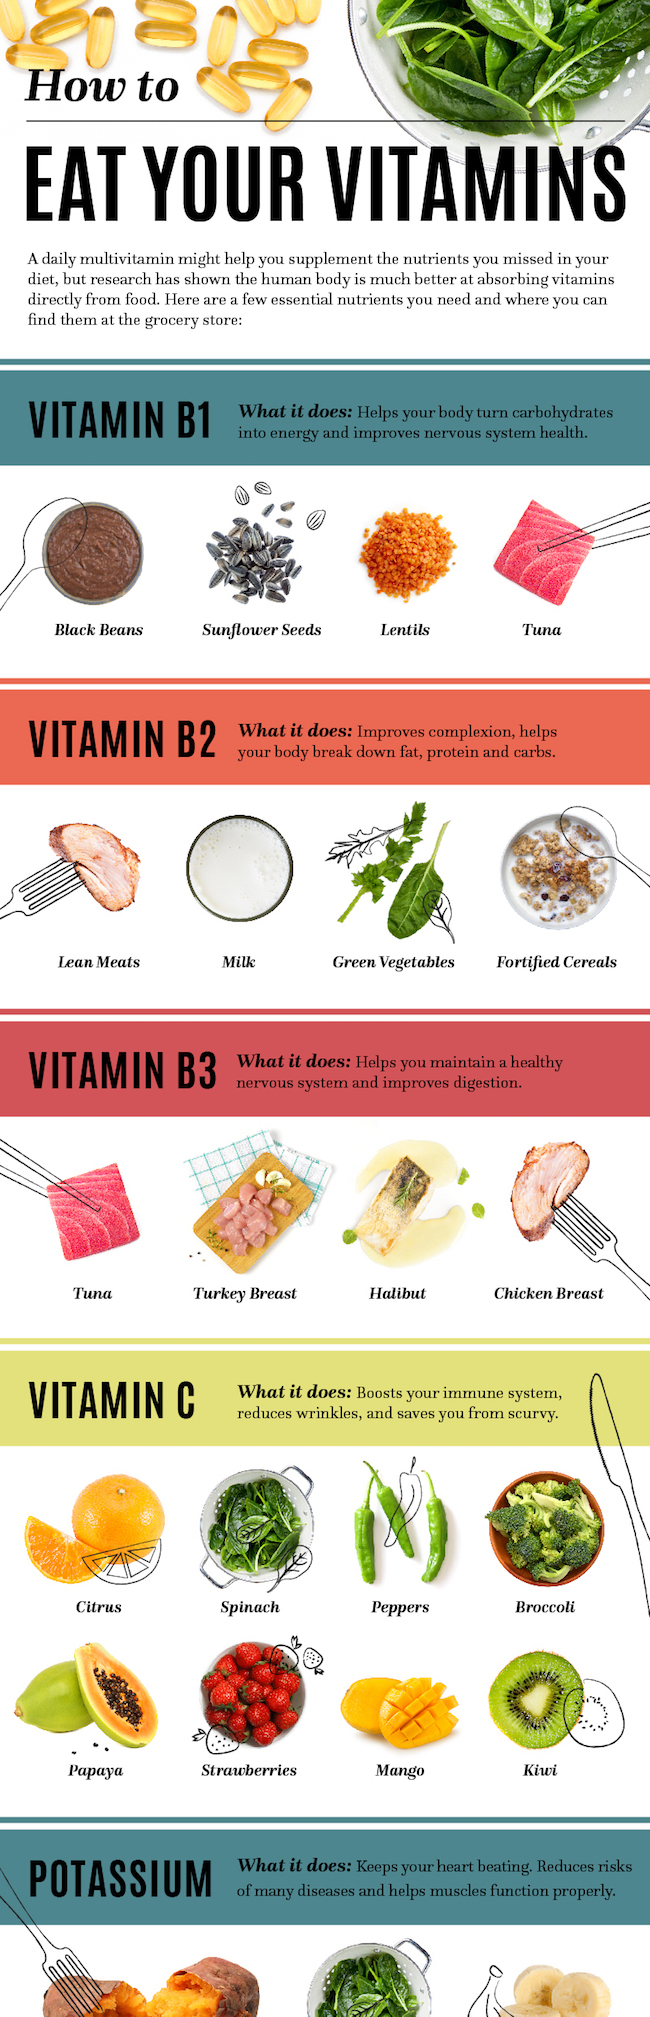 Eat Your Vitamins Infographic3